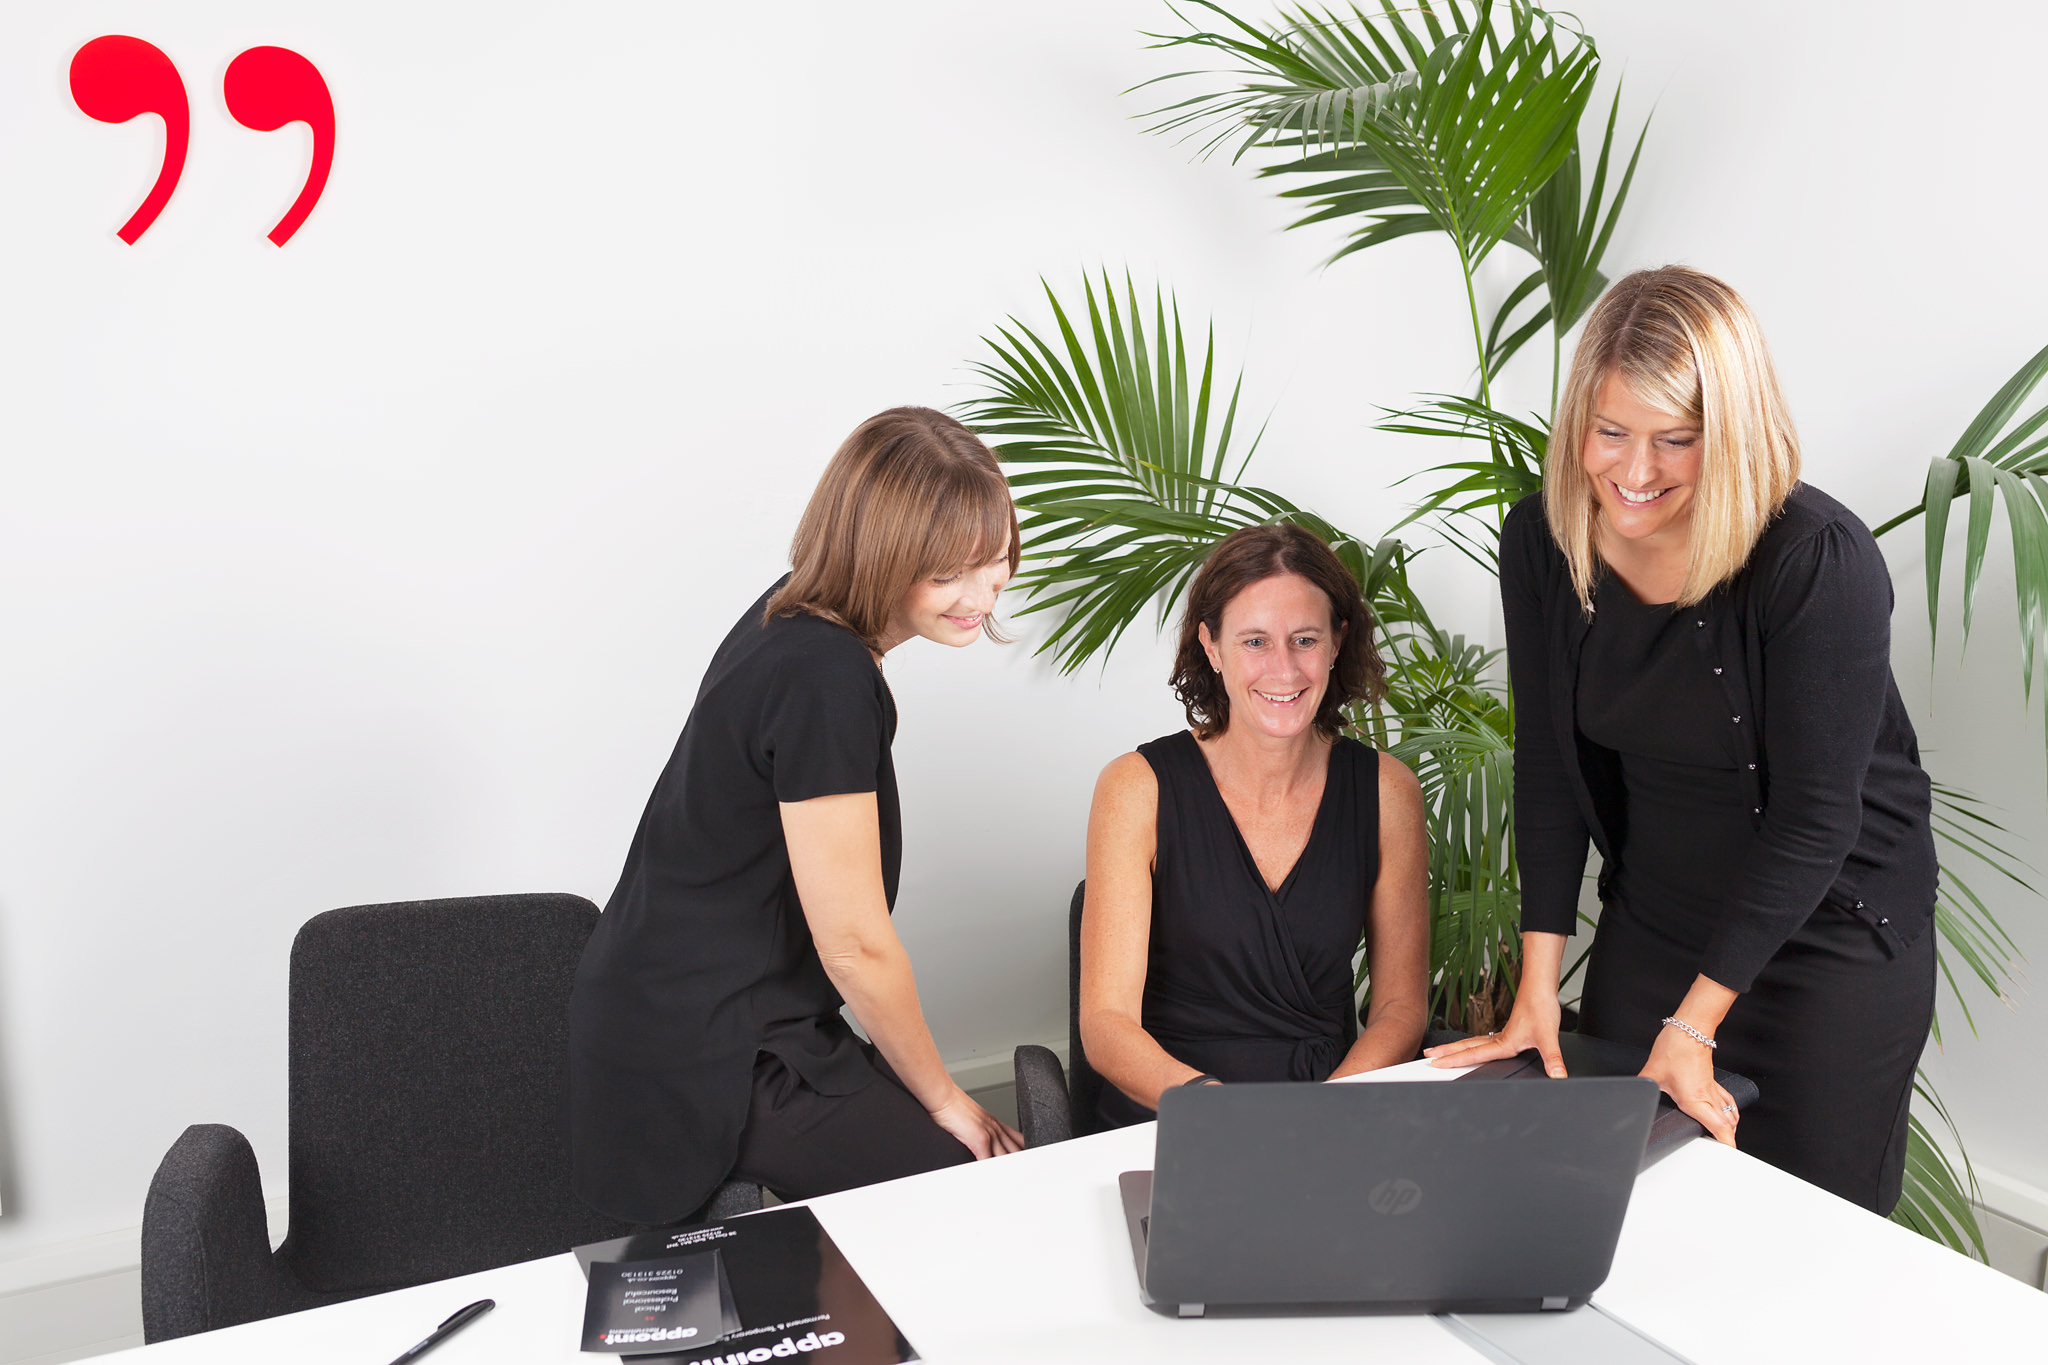 Professional portraiture for the workplace.